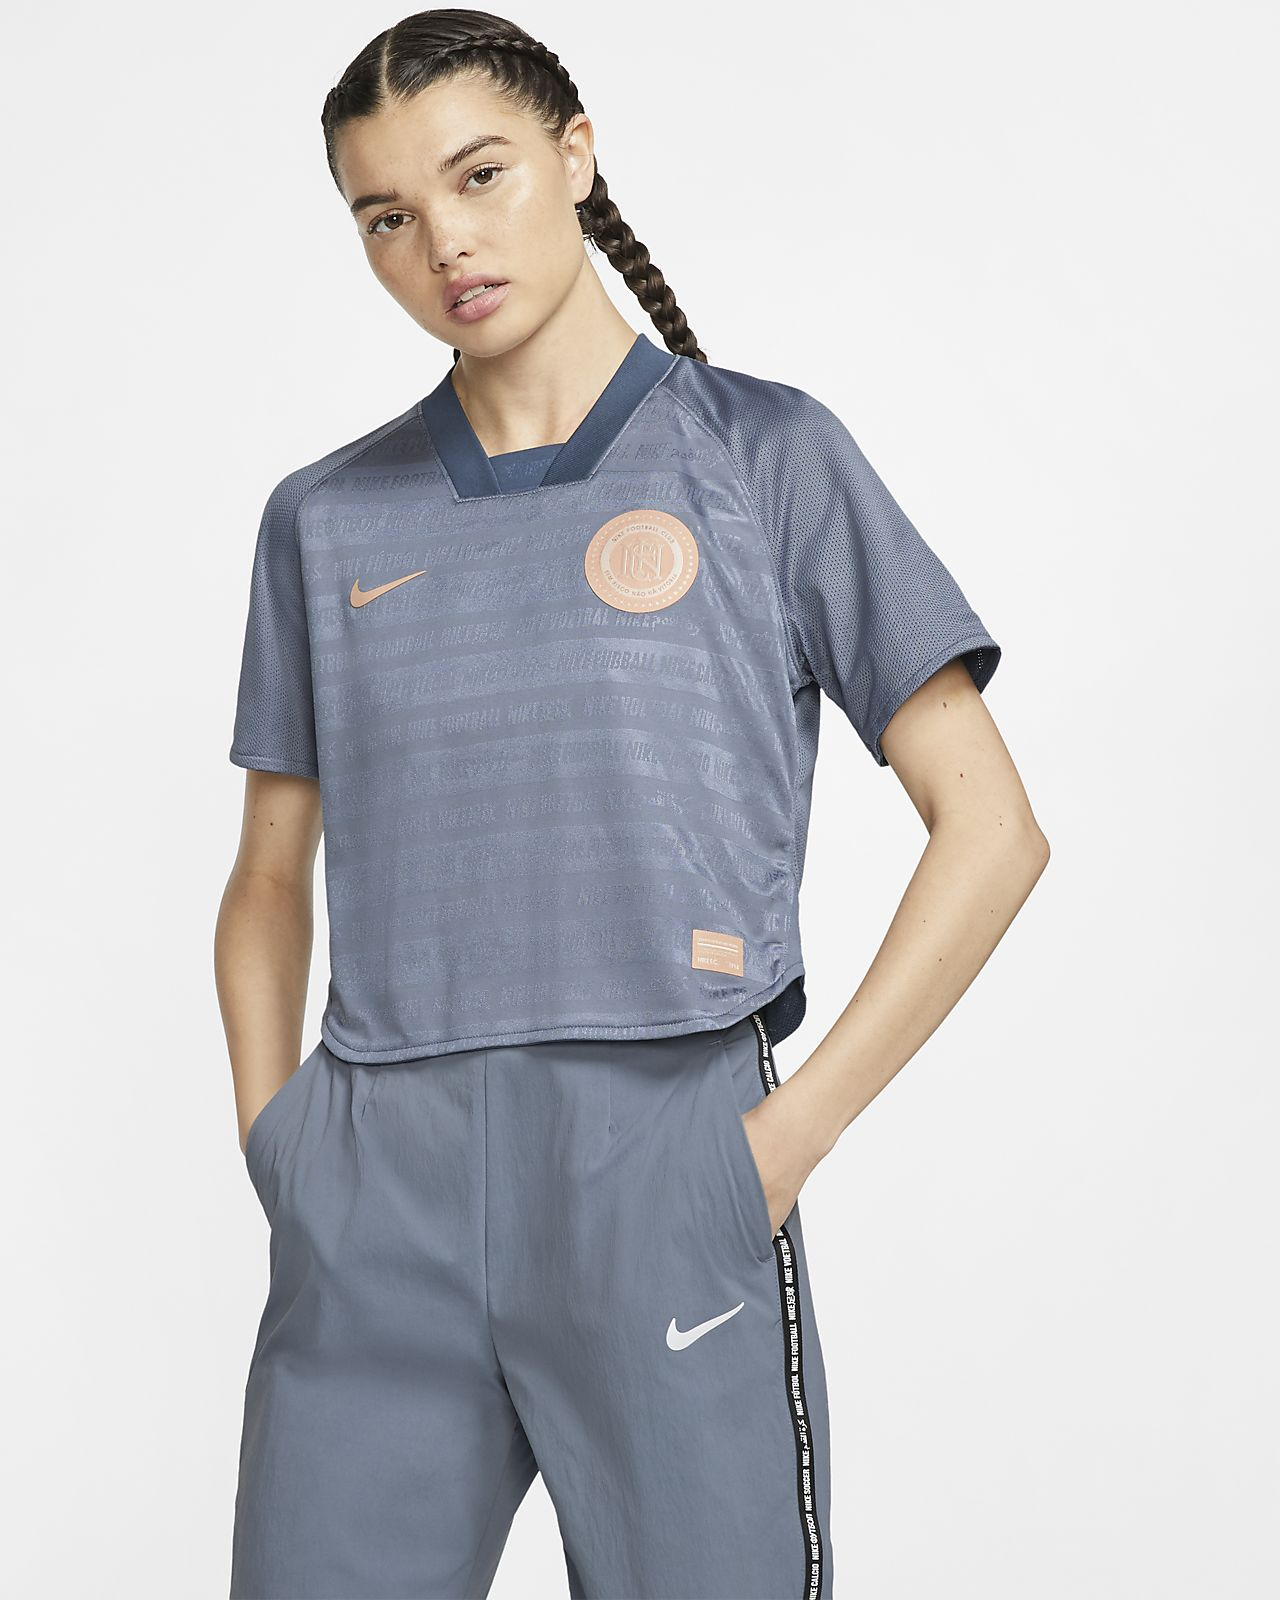 Nike F.C. Dri-FIT Women's Short-Sleeve Football Top